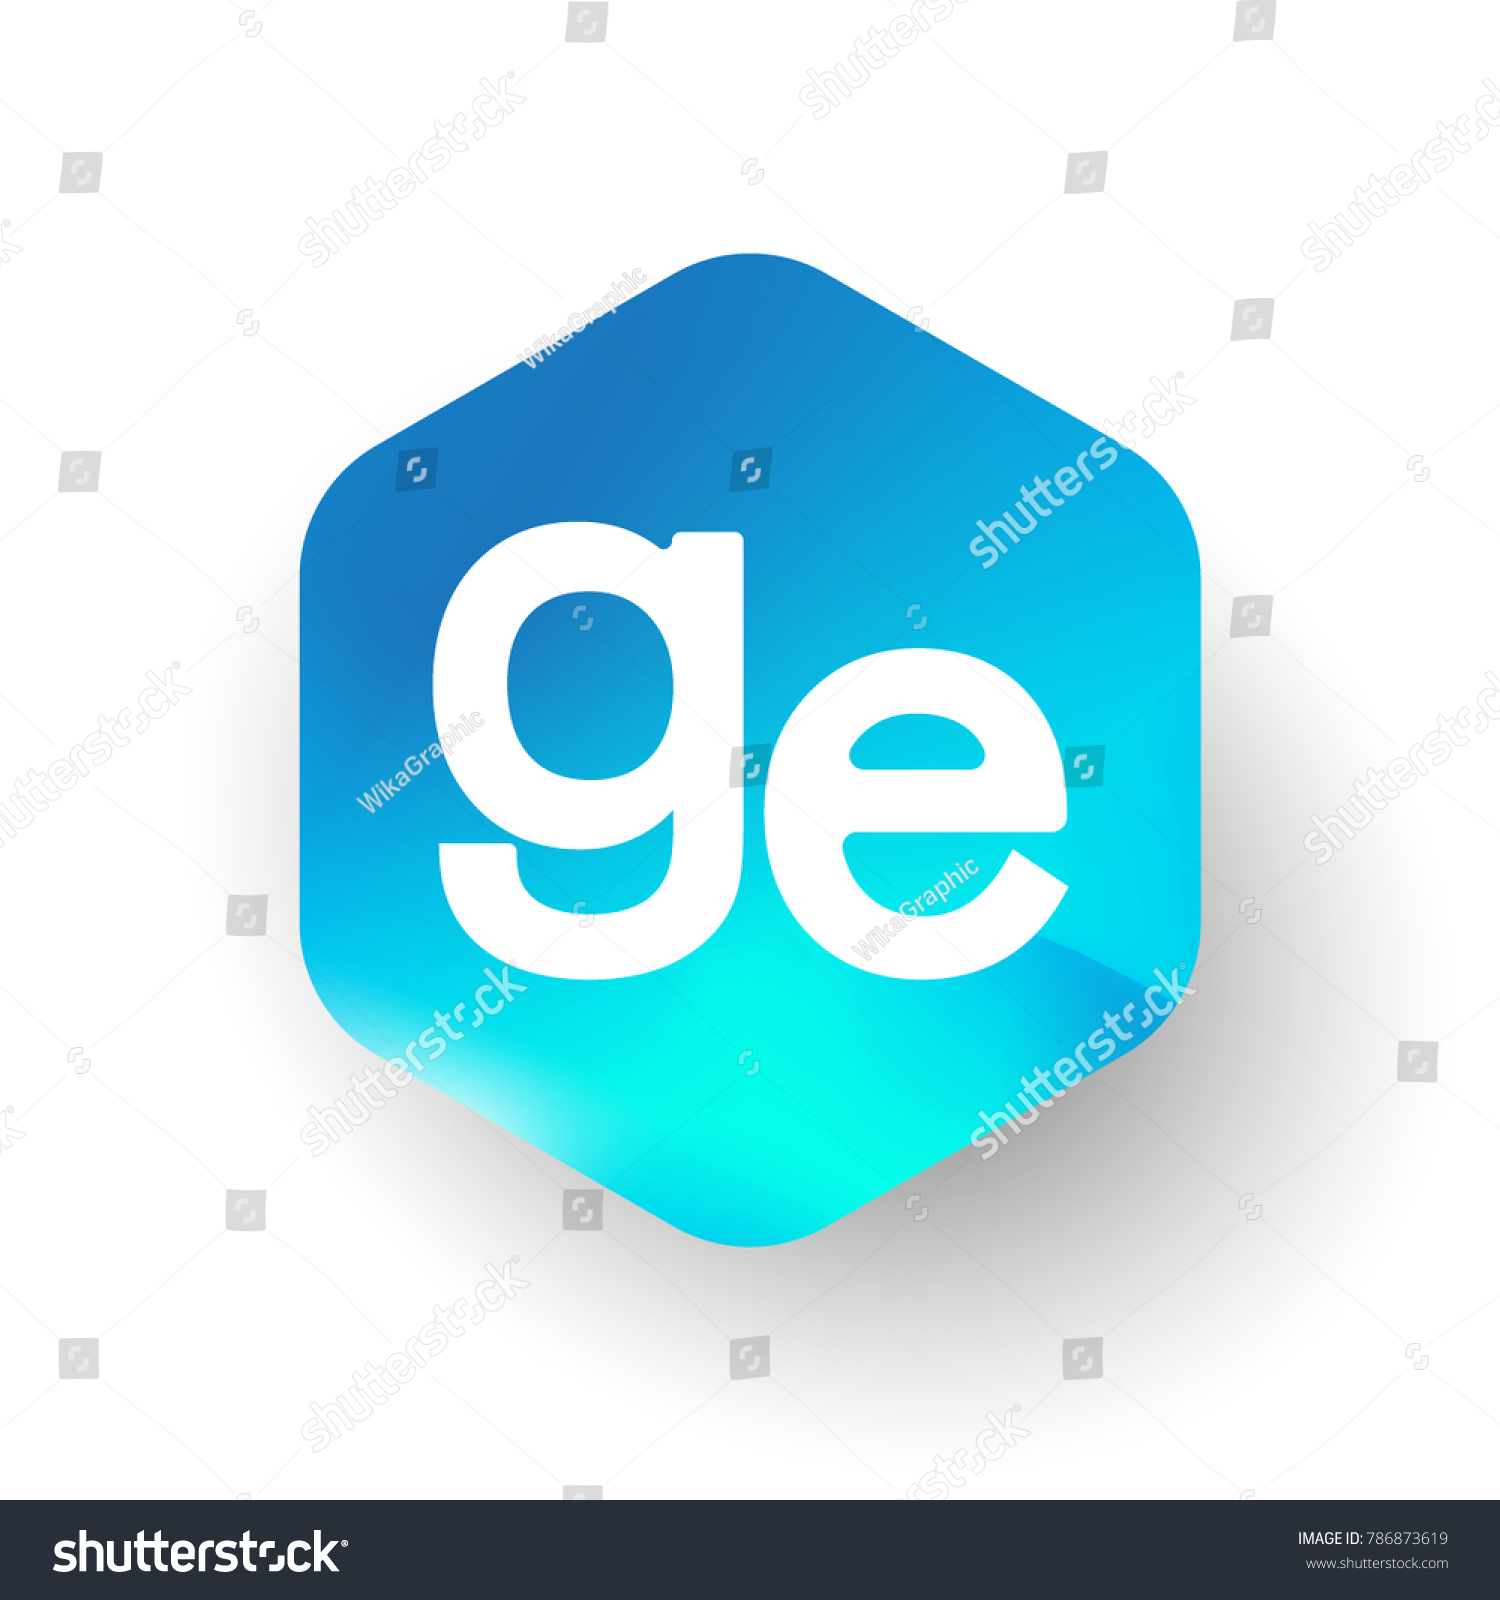 Letter ge logo hexagon shape colorful stock vector 786873619 letter ge logo in hexagon shape and colorful background letter combination logo design for business biocorpaavc Gallery